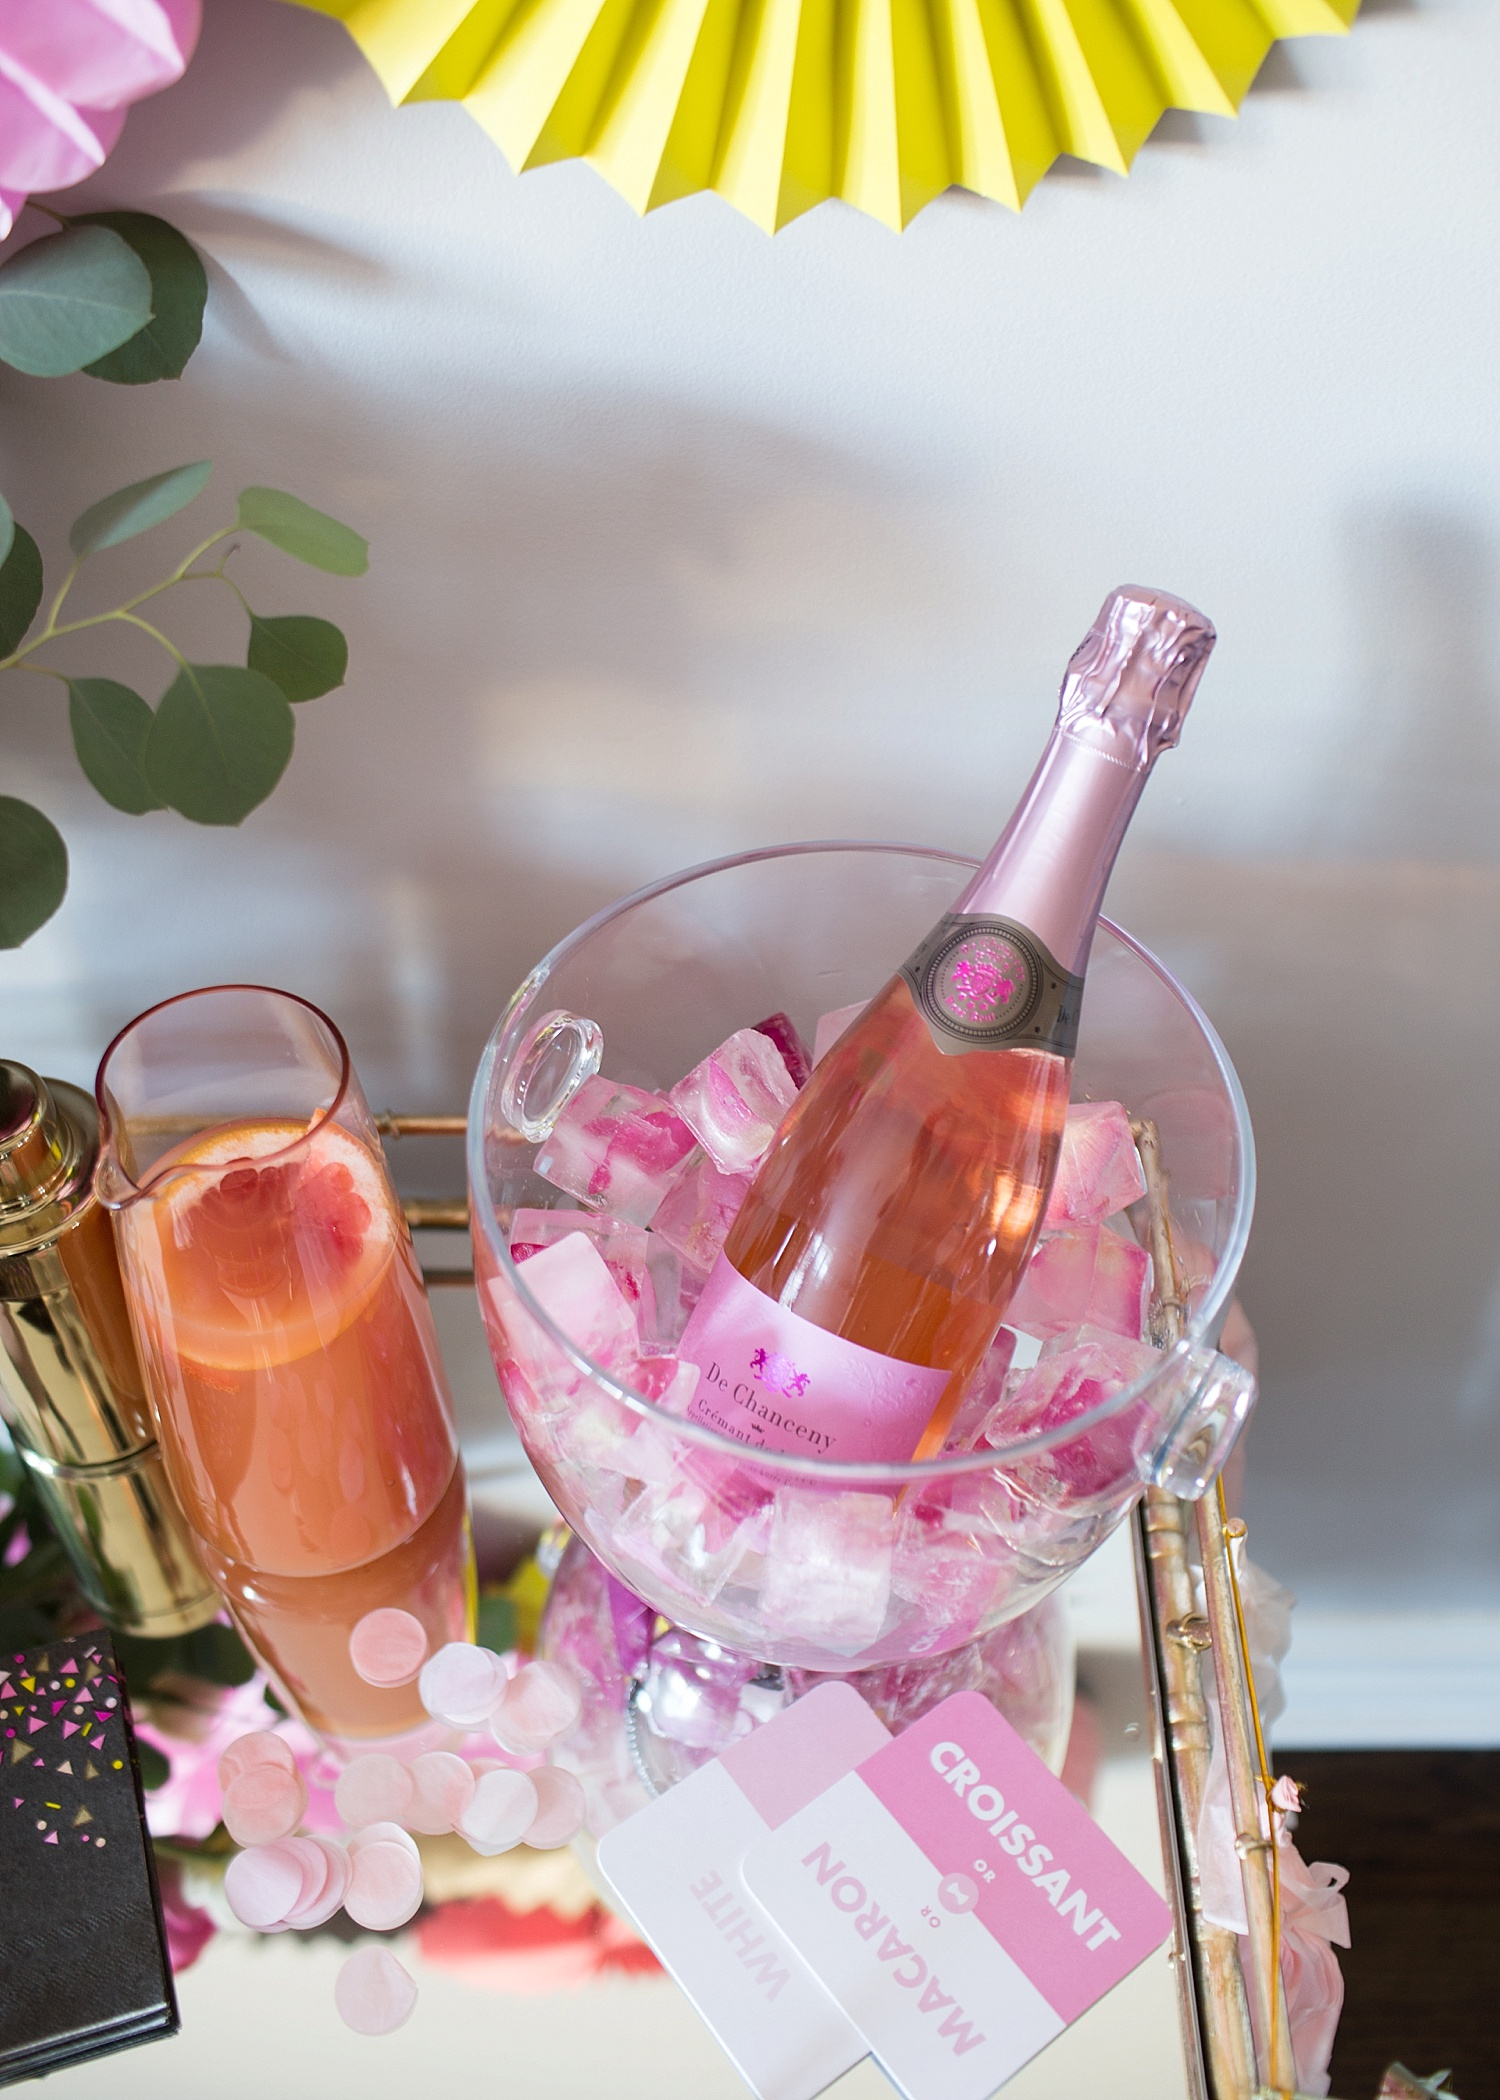 rose champagne over rose petal ice cubes